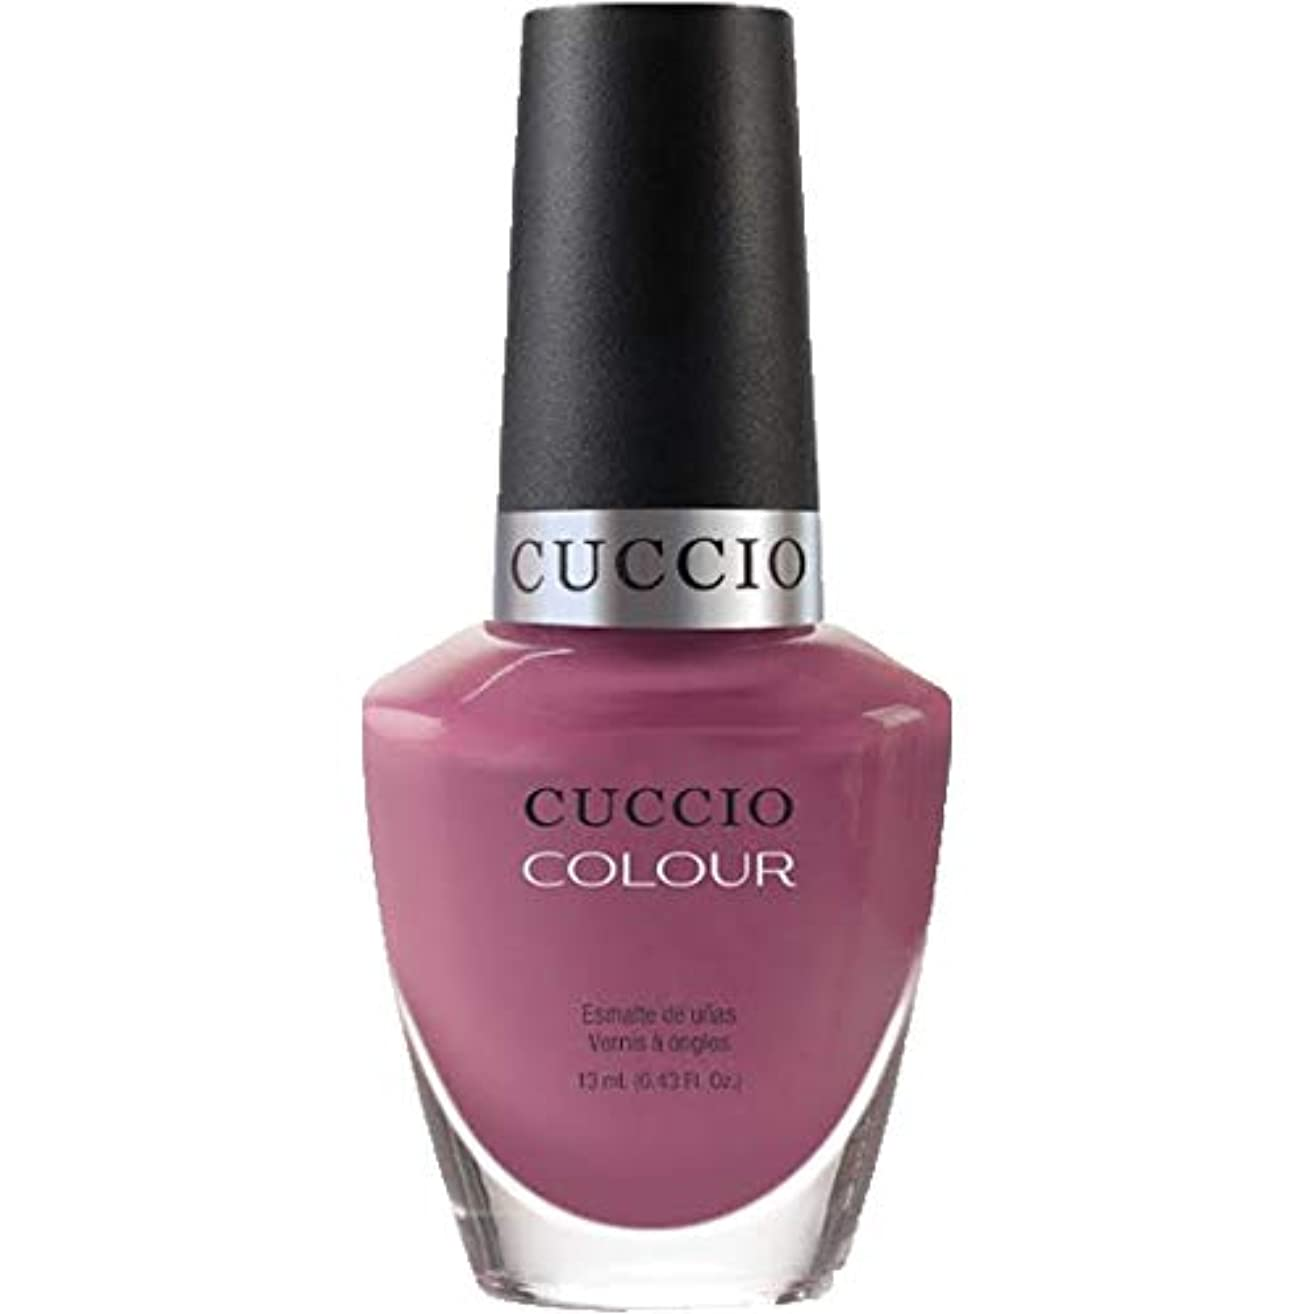 Cuccio Colour Gloss Lacquer - Pulp Fiction - 0.43oz/13ml